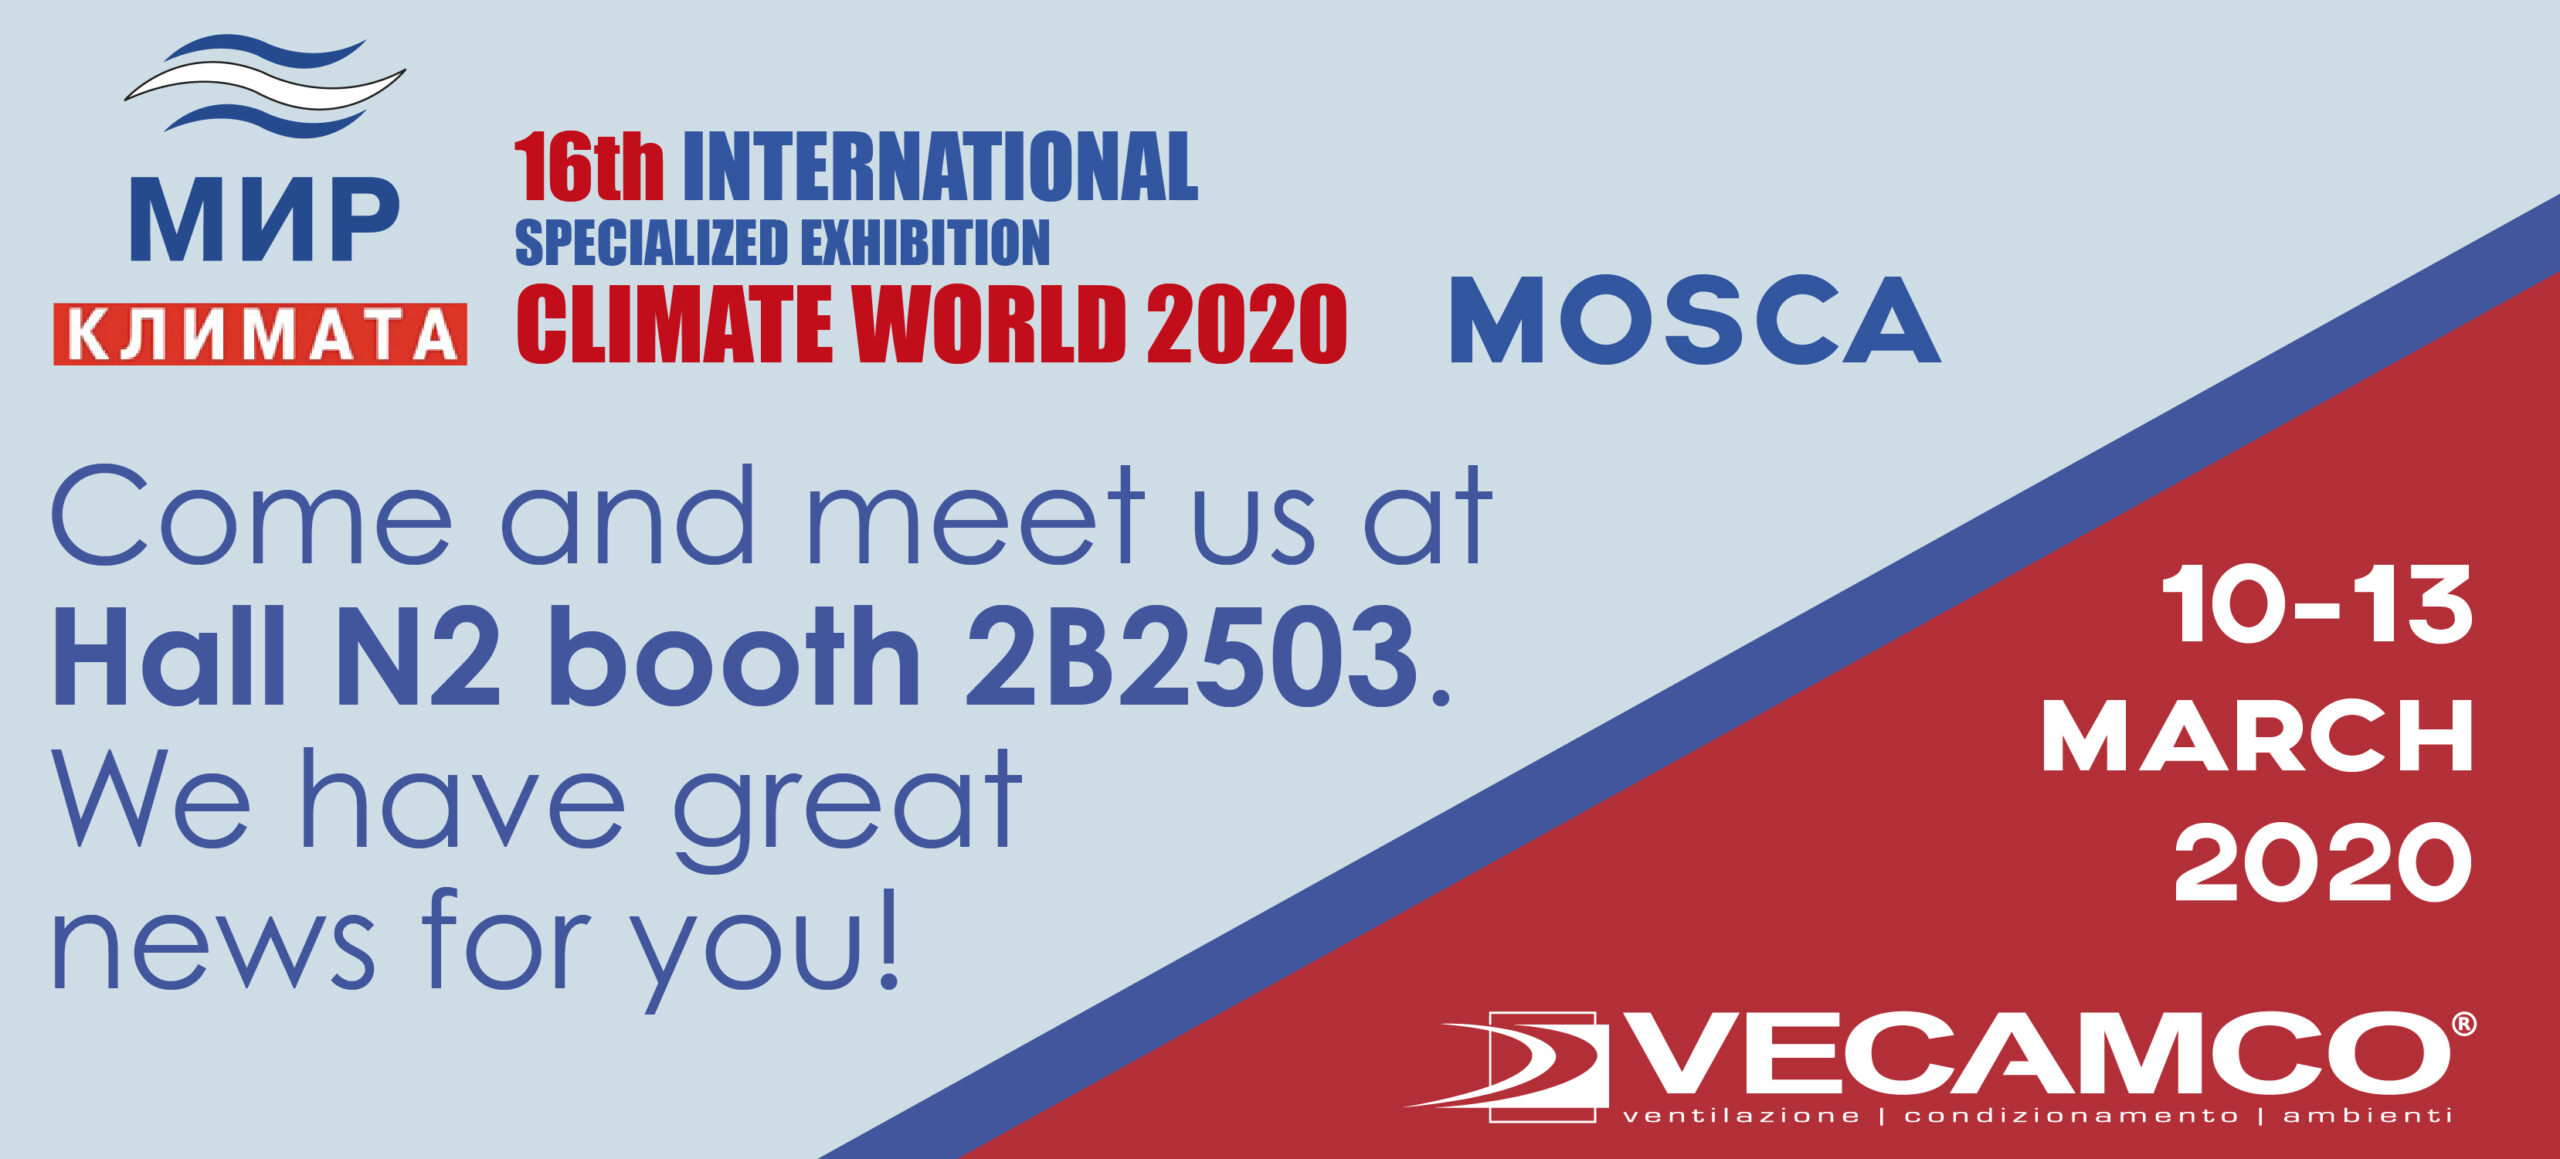 VECAMCO WAS PRESENT AT THE CLIMATE WORLD FAIR IN MOSCOW